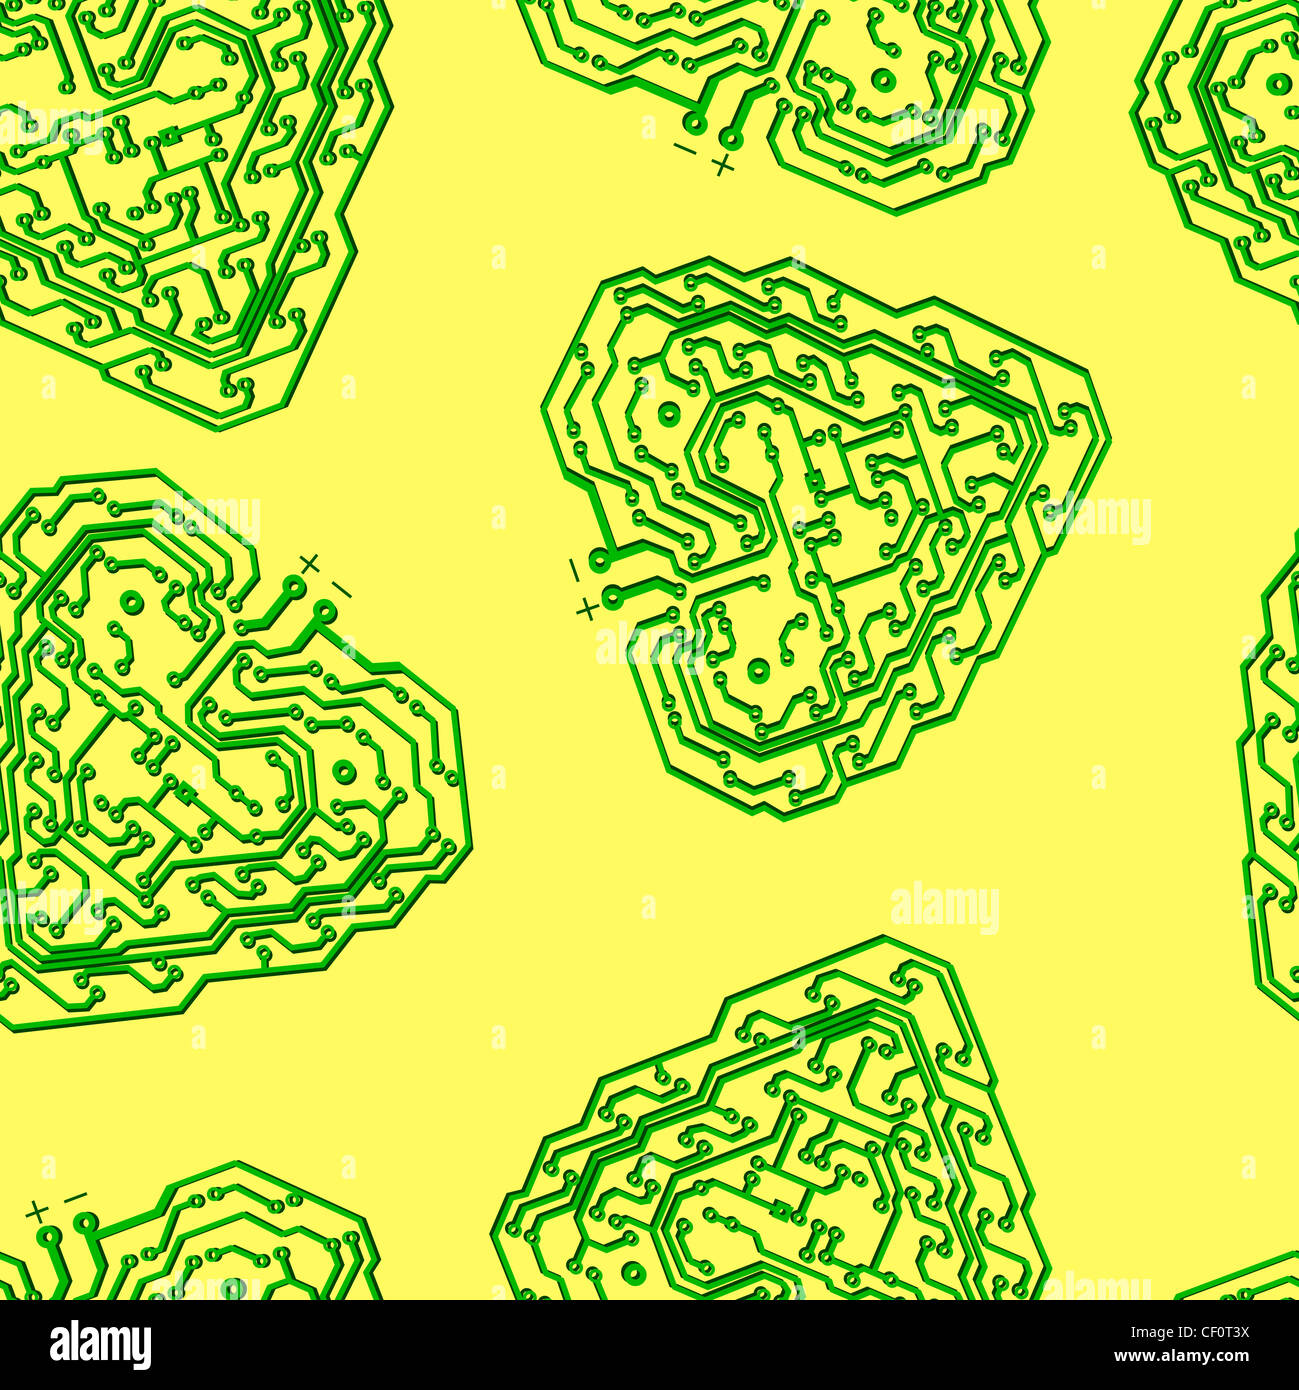 seamless wallpaper circuit board pattern in the shape of the heart